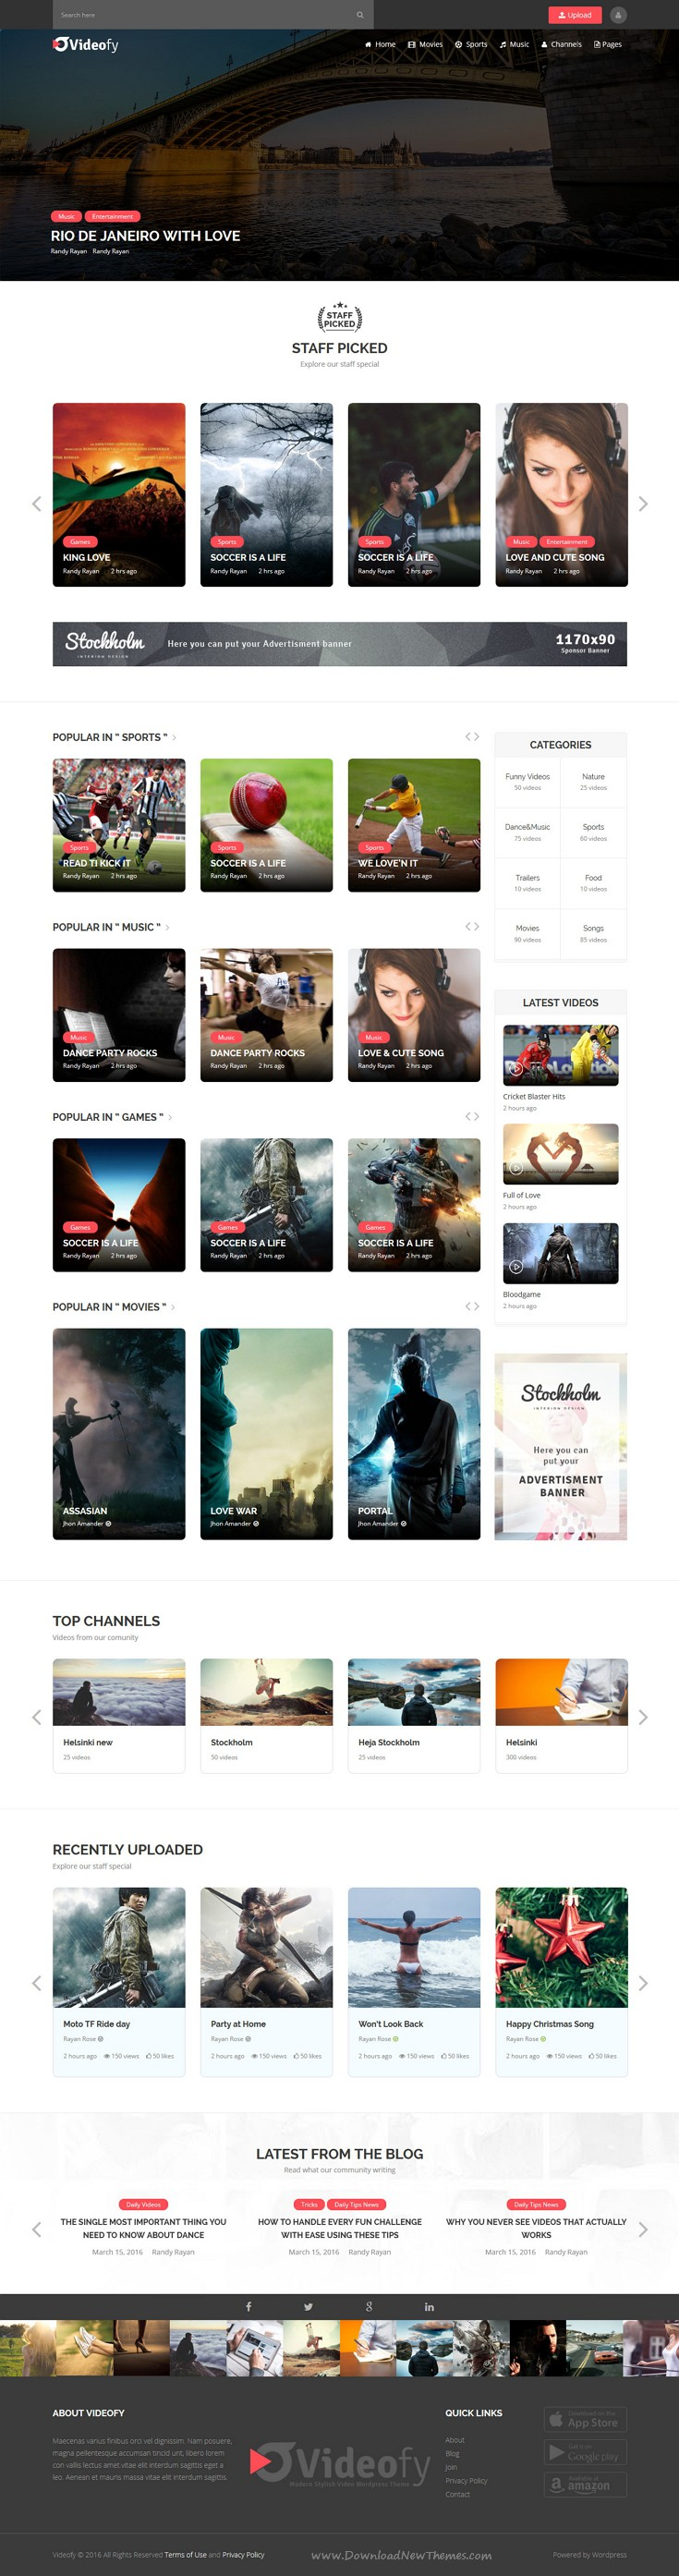 Videofy Is A Clean And Well Organized Bootstrap Template For Video